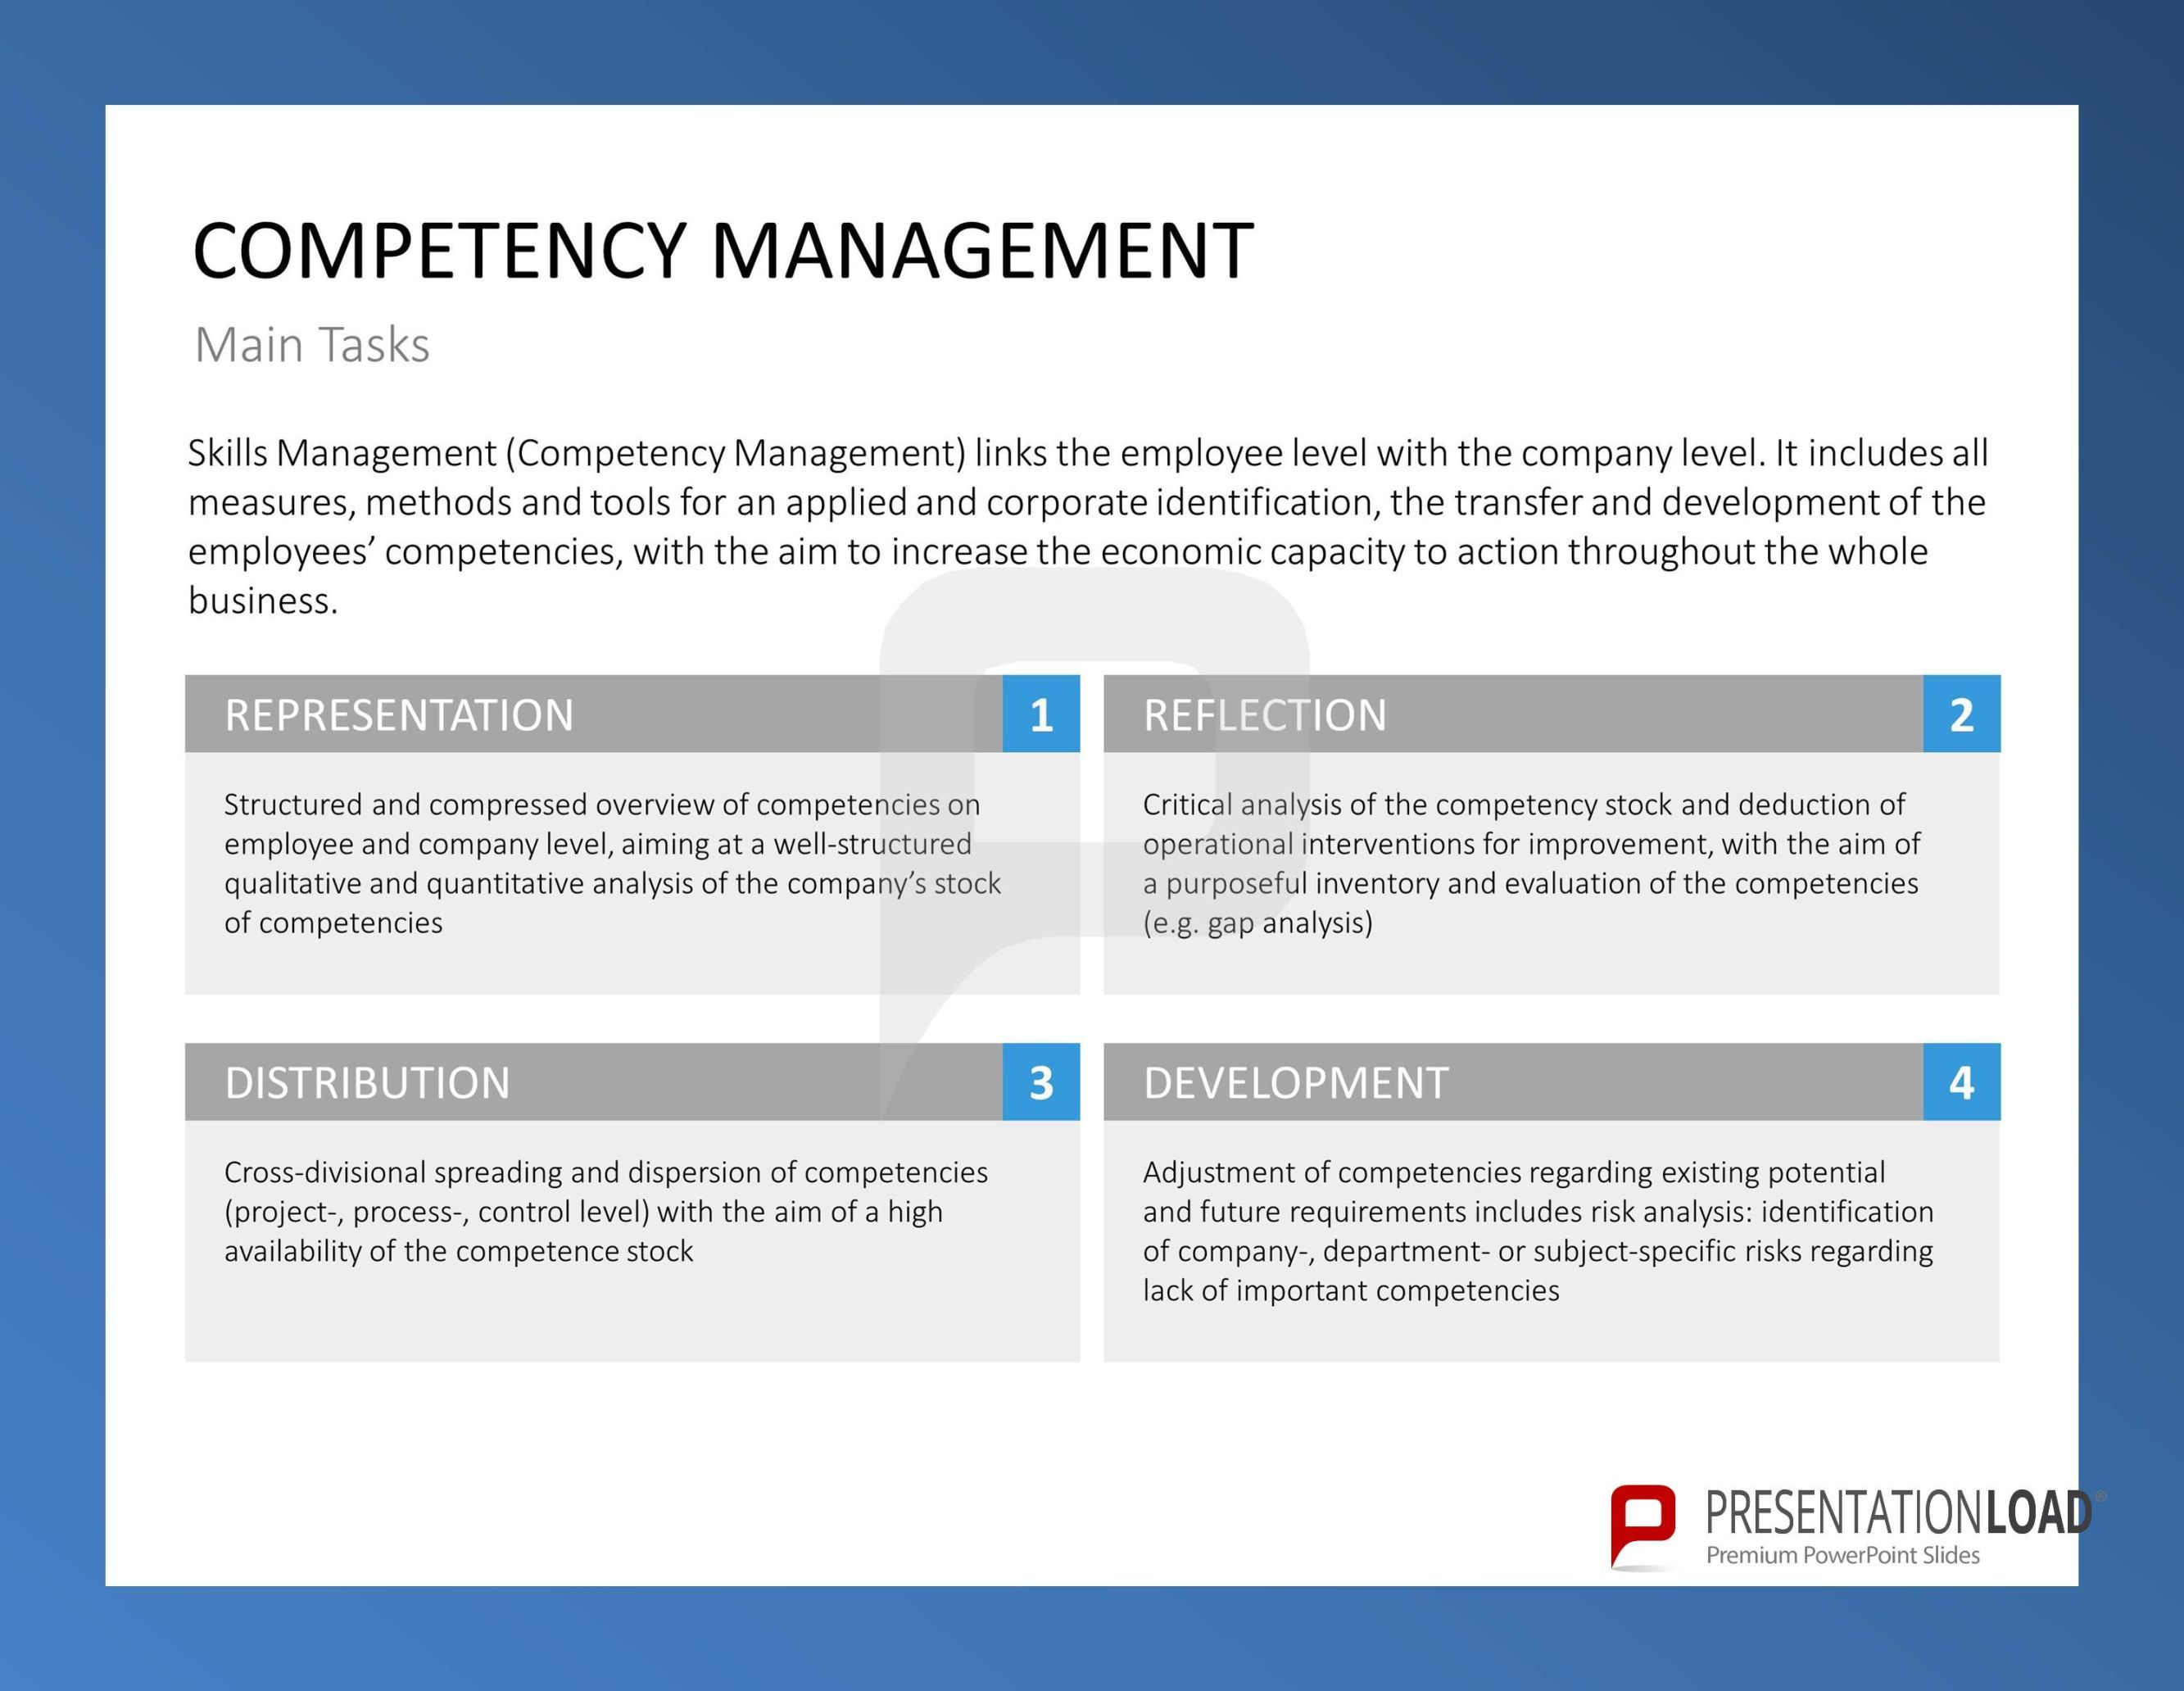 managerial competencies This study explores the link between the managerial competencies and the  firms' performance in a sample drown from 4 big airlines organizations in  jordan.